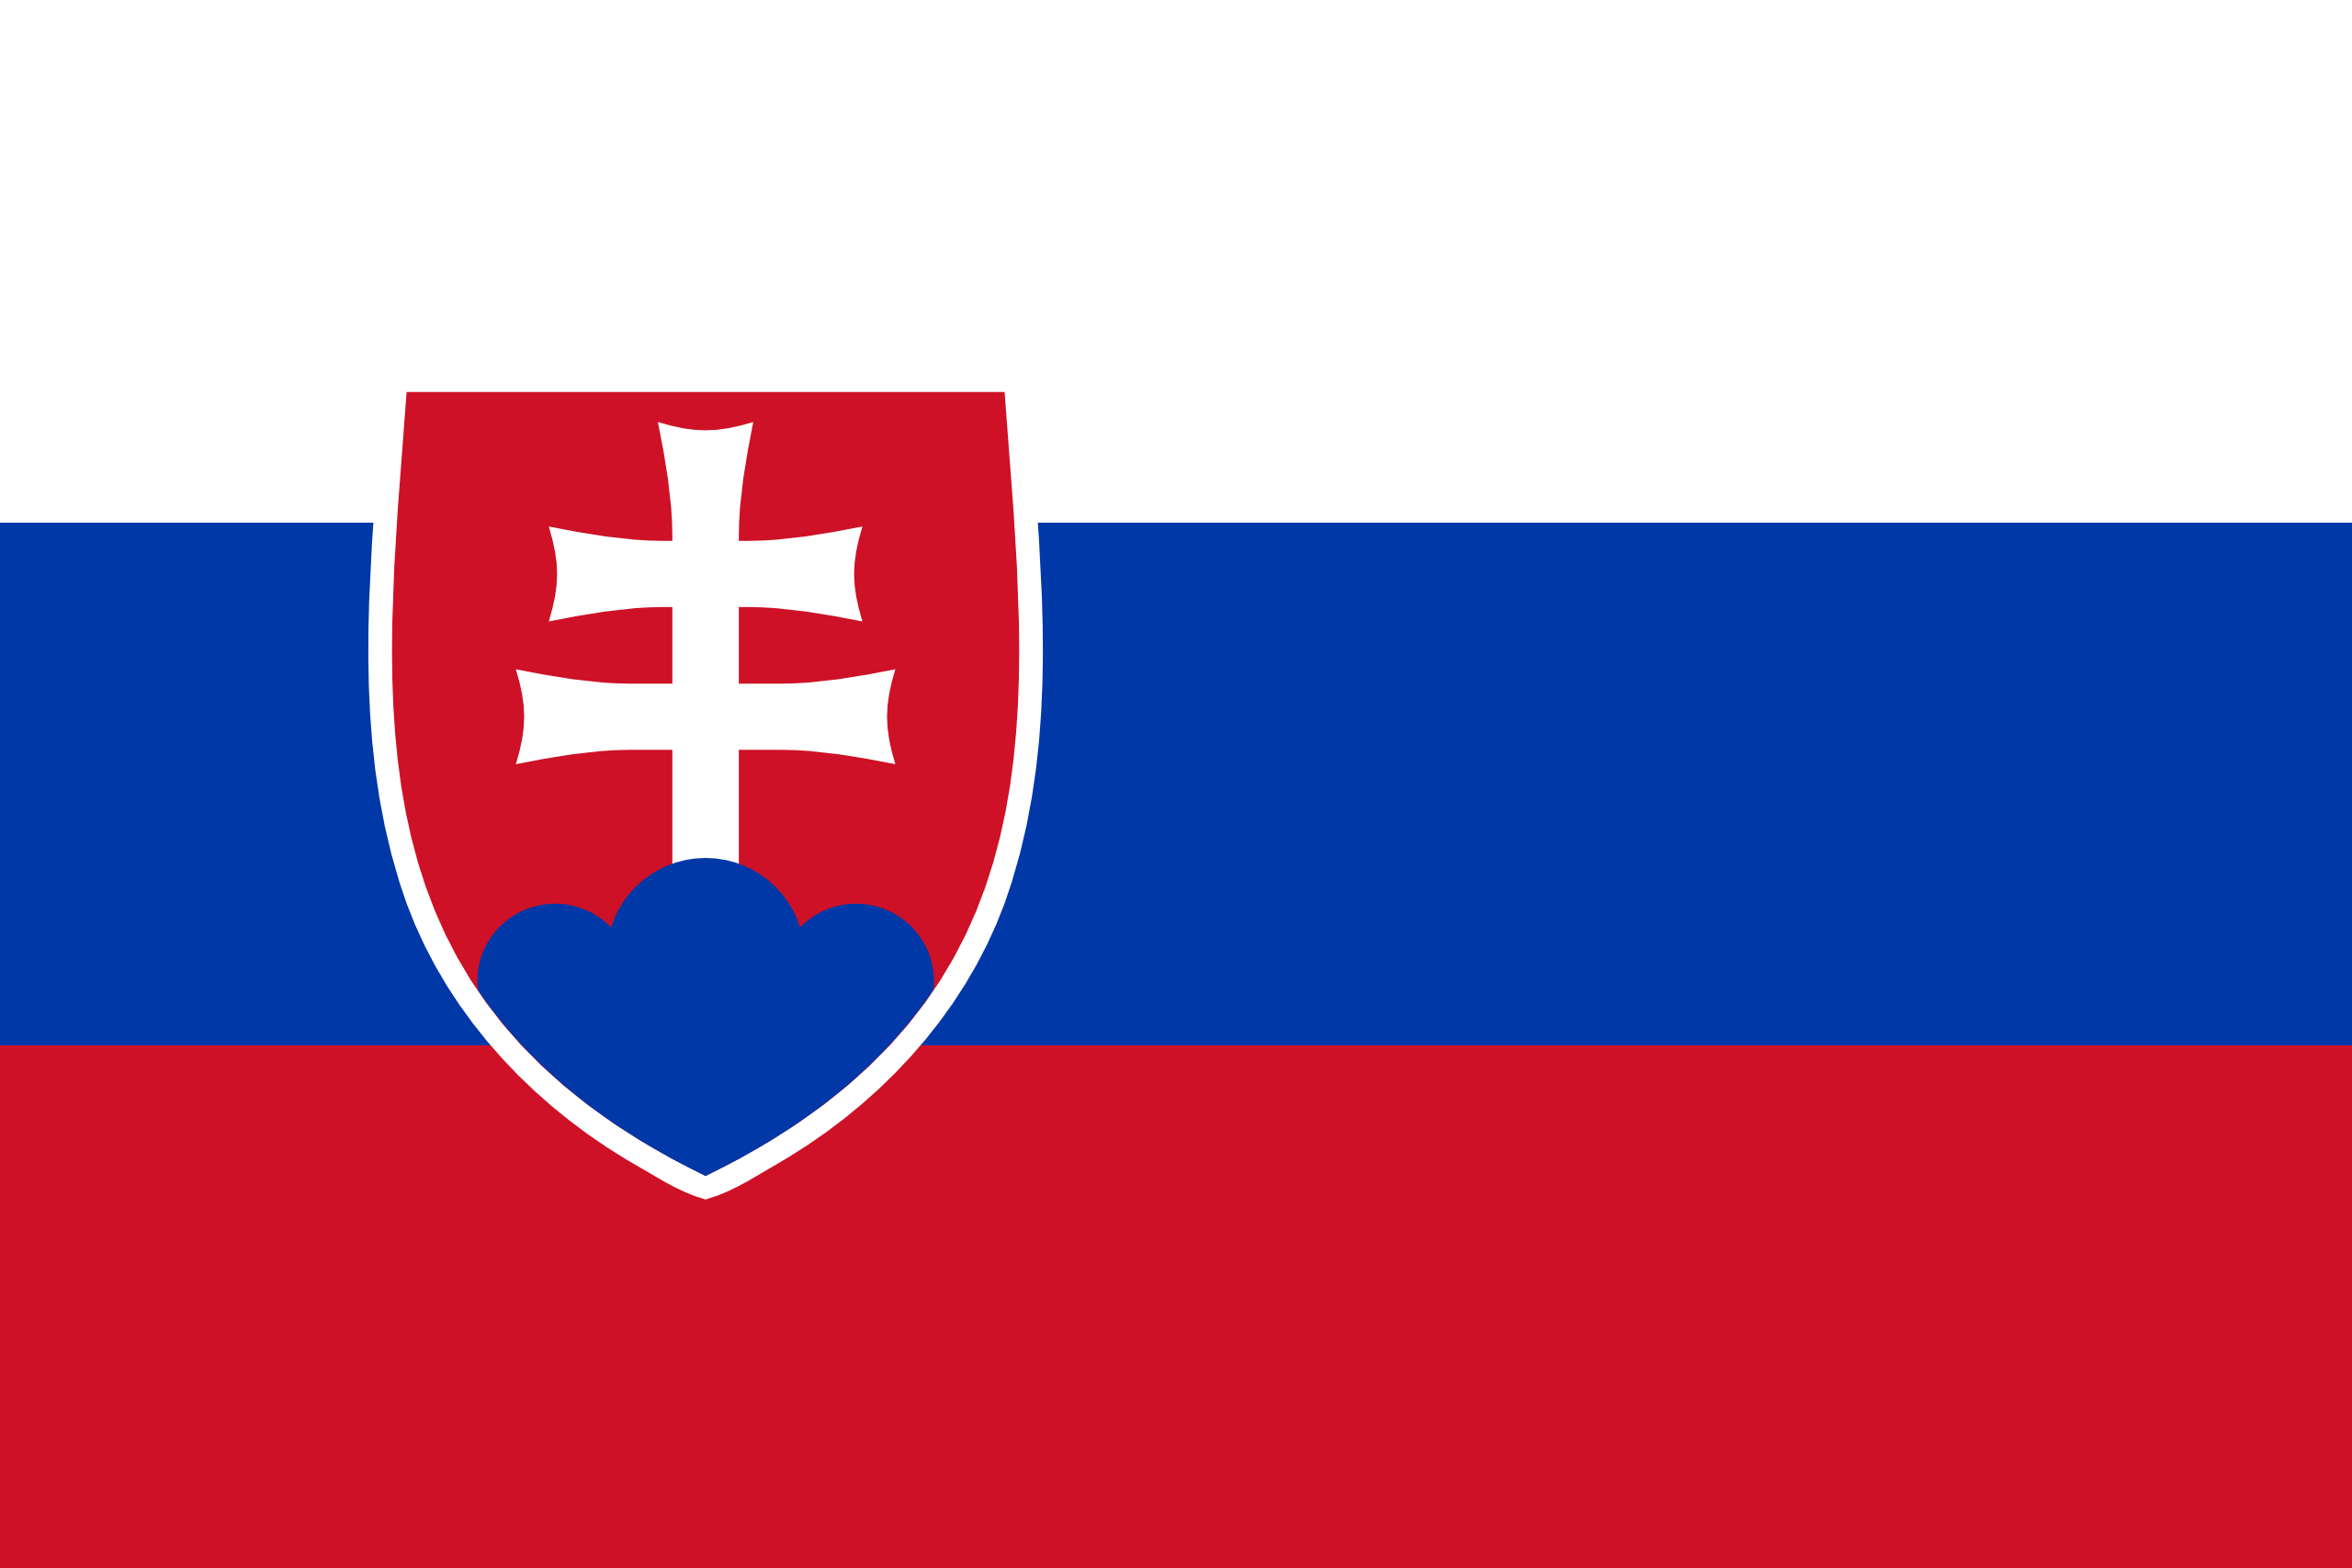 EMBASSY AND CONSULATE OF SLOVAKIA